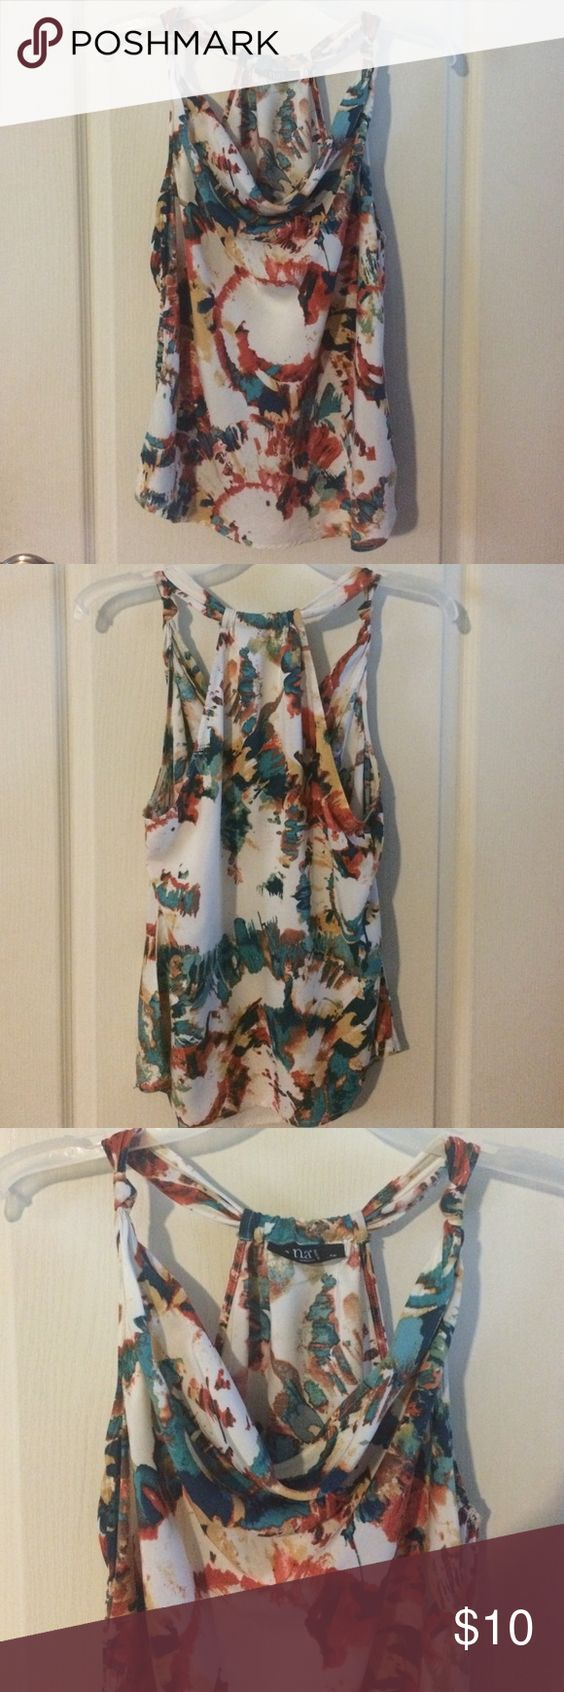 a.n.a. Dress/casual top (only) gently used a.n.a. Petite Dress/casual top shades of cream, teal, orange, browns. (PANTS SOLD SEPARATELY) a.n.a Tops Blouses